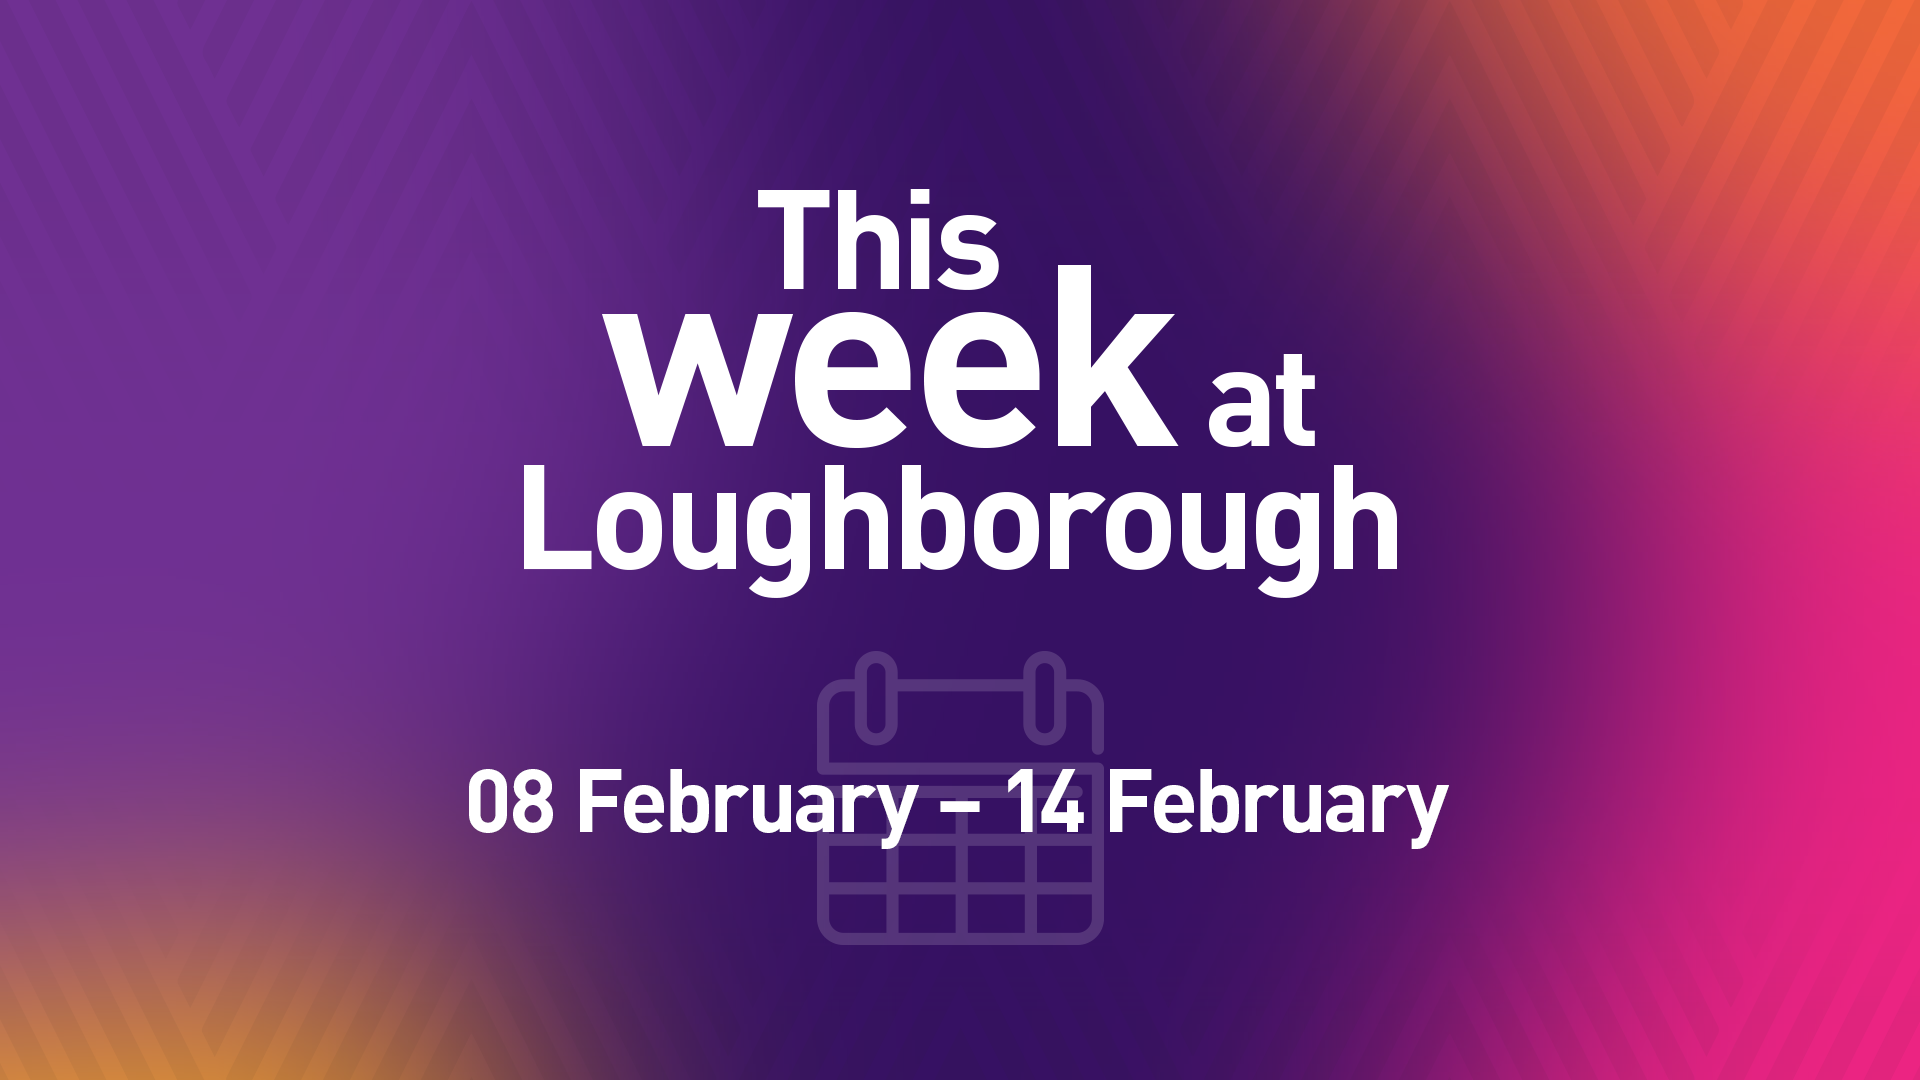 This Week at Loughborough | 08 February